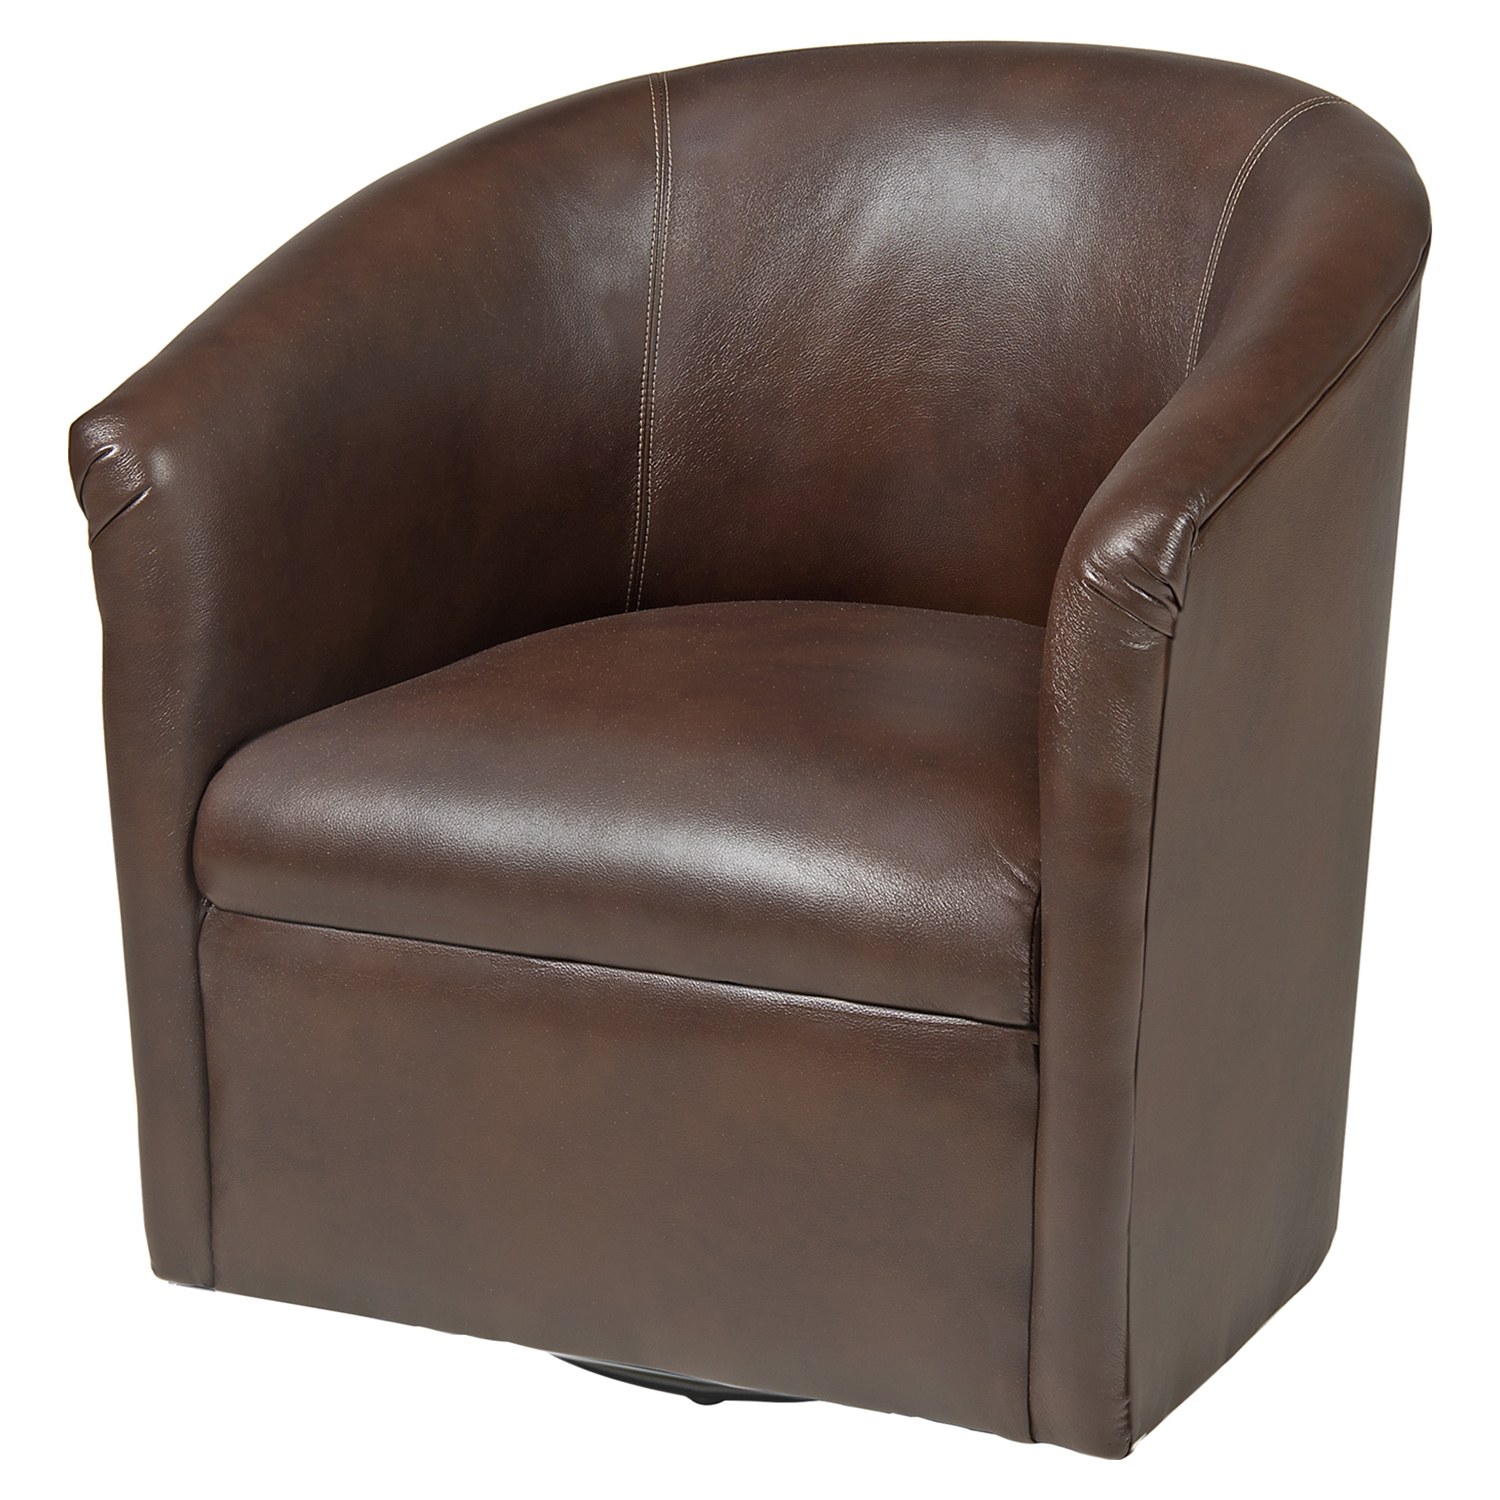 Draper Swivel Chair - Chocolate